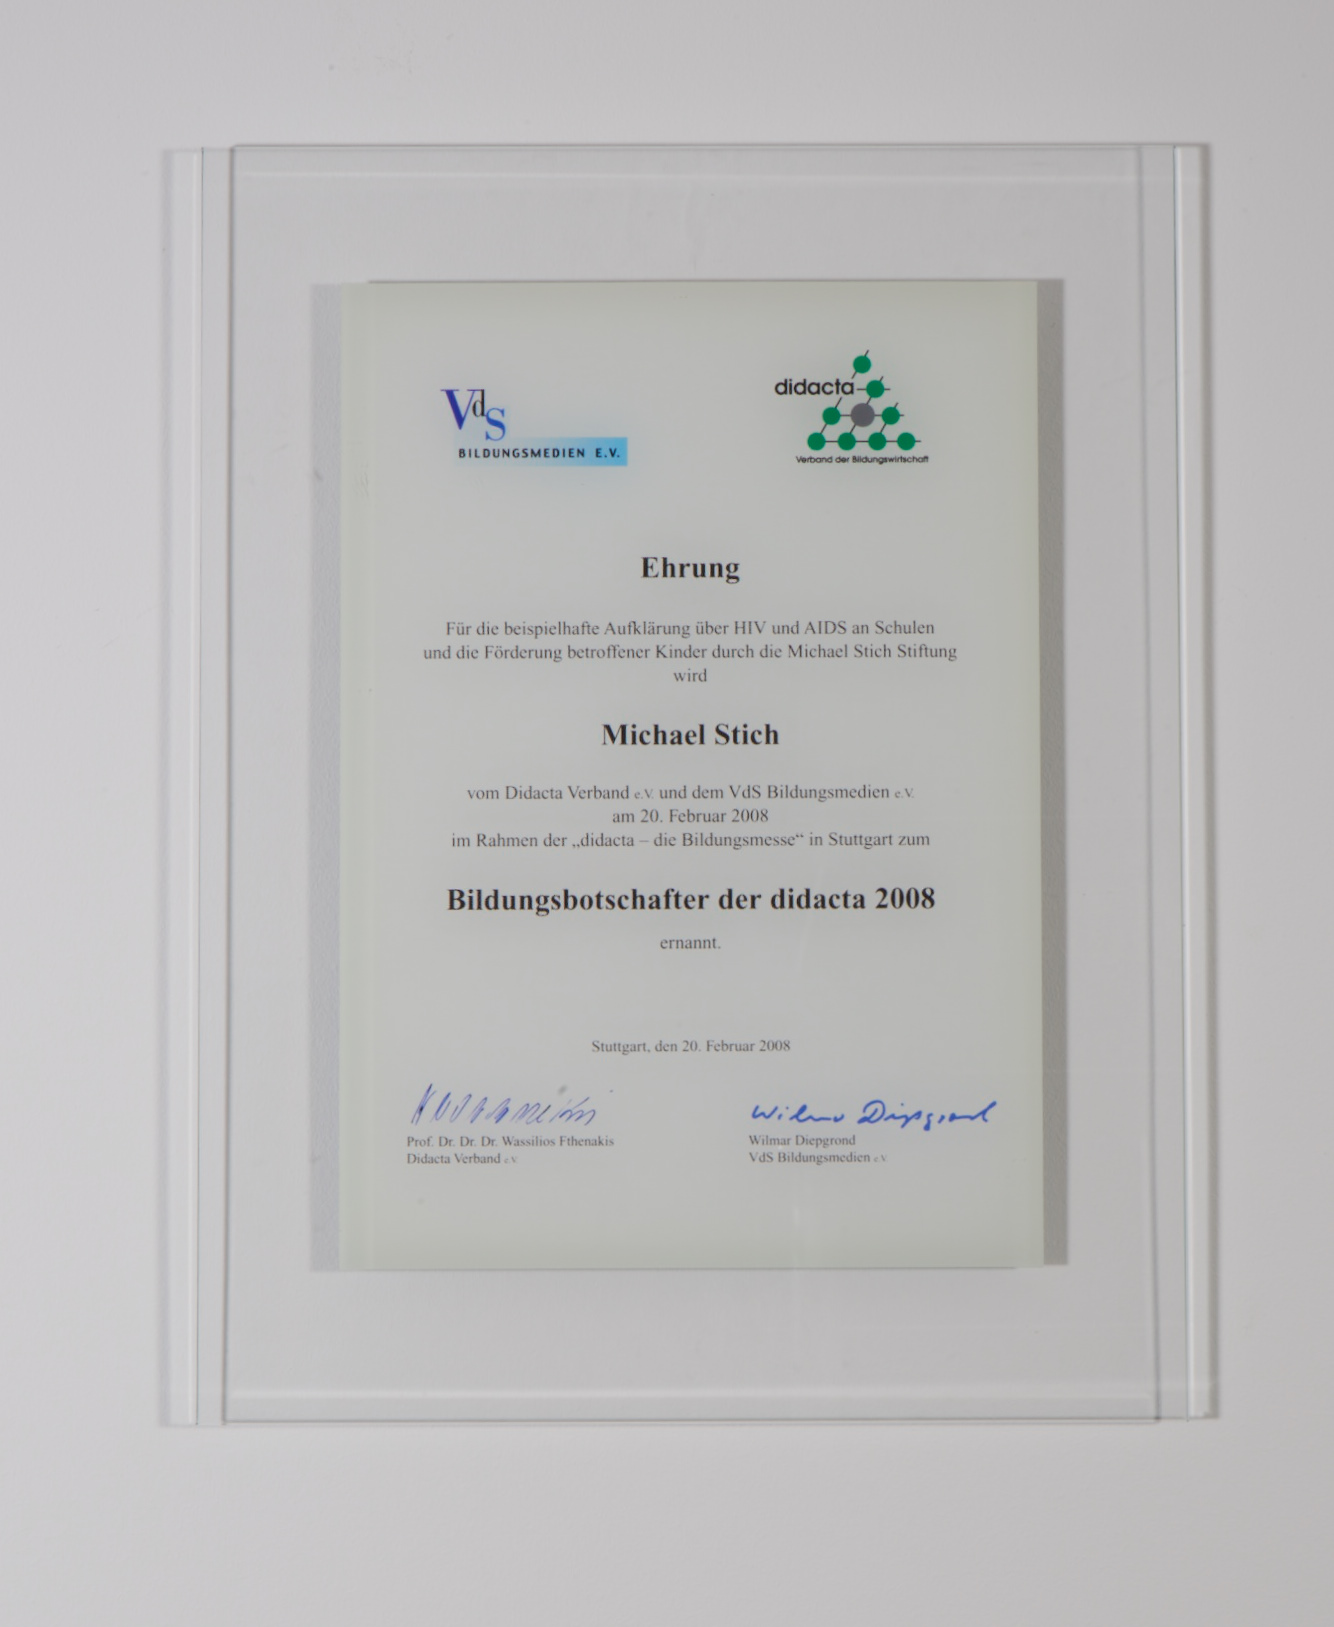 Awards - Michael Stich Stiftung